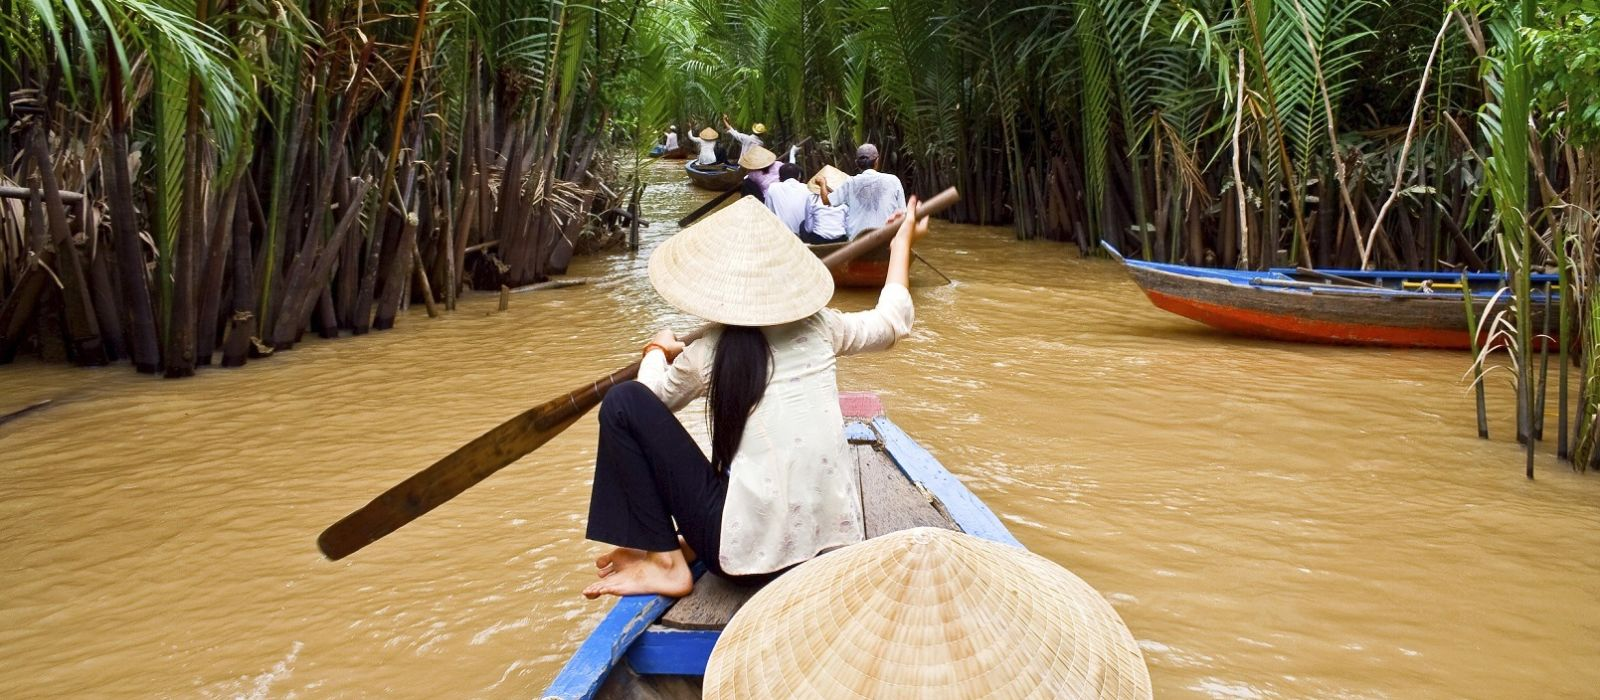 Destination Can Tho / Mekong Delta Vietnam